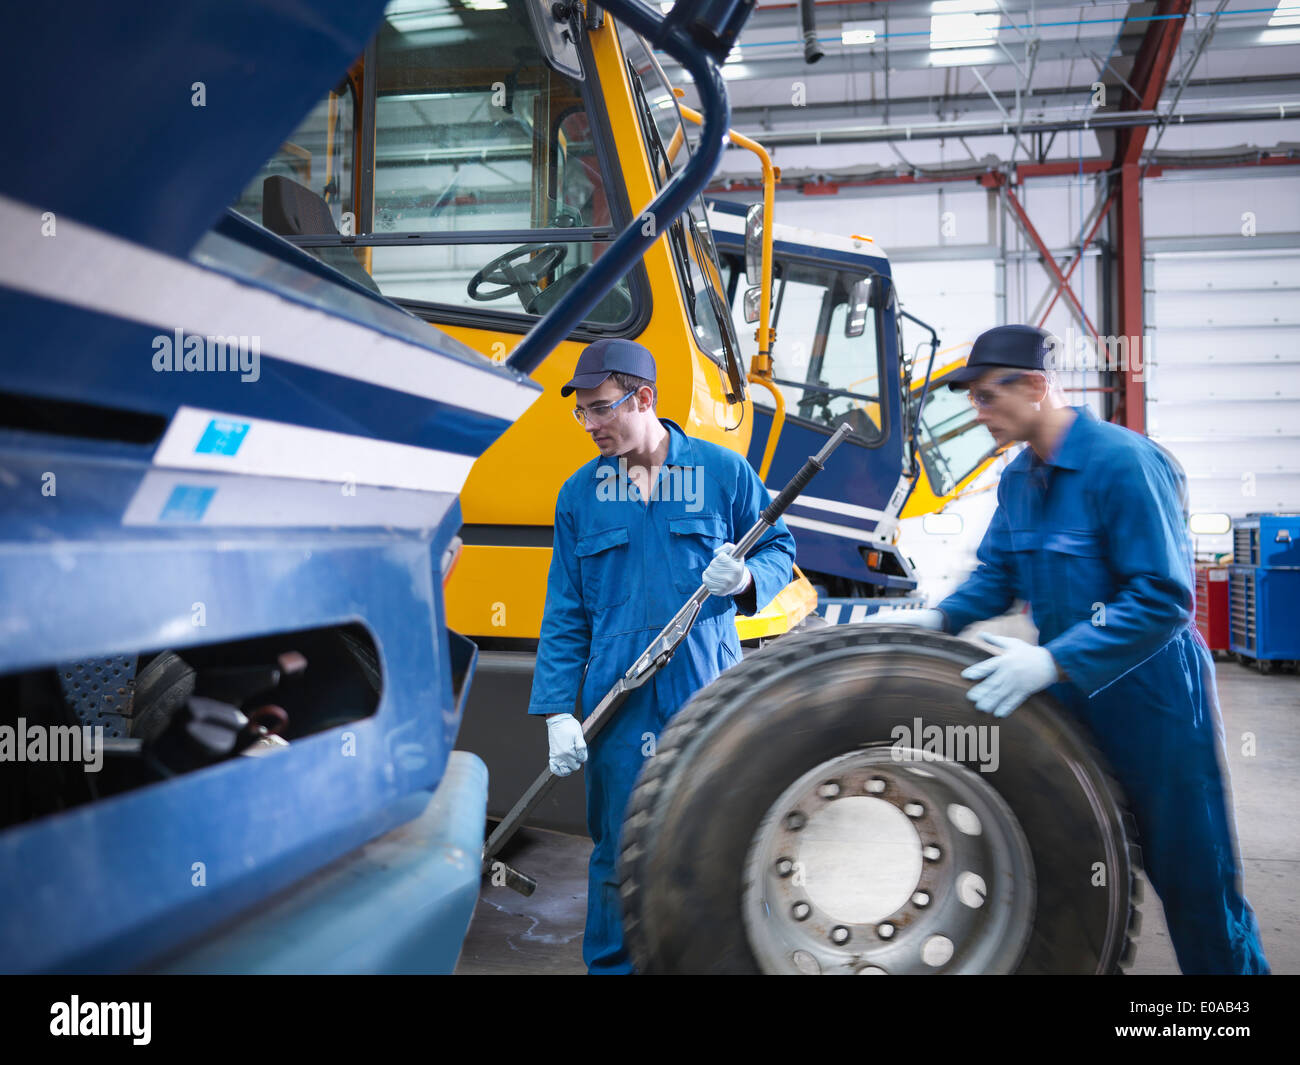 Engineers prepare to fix wheel in truck repair factory - Stock Image